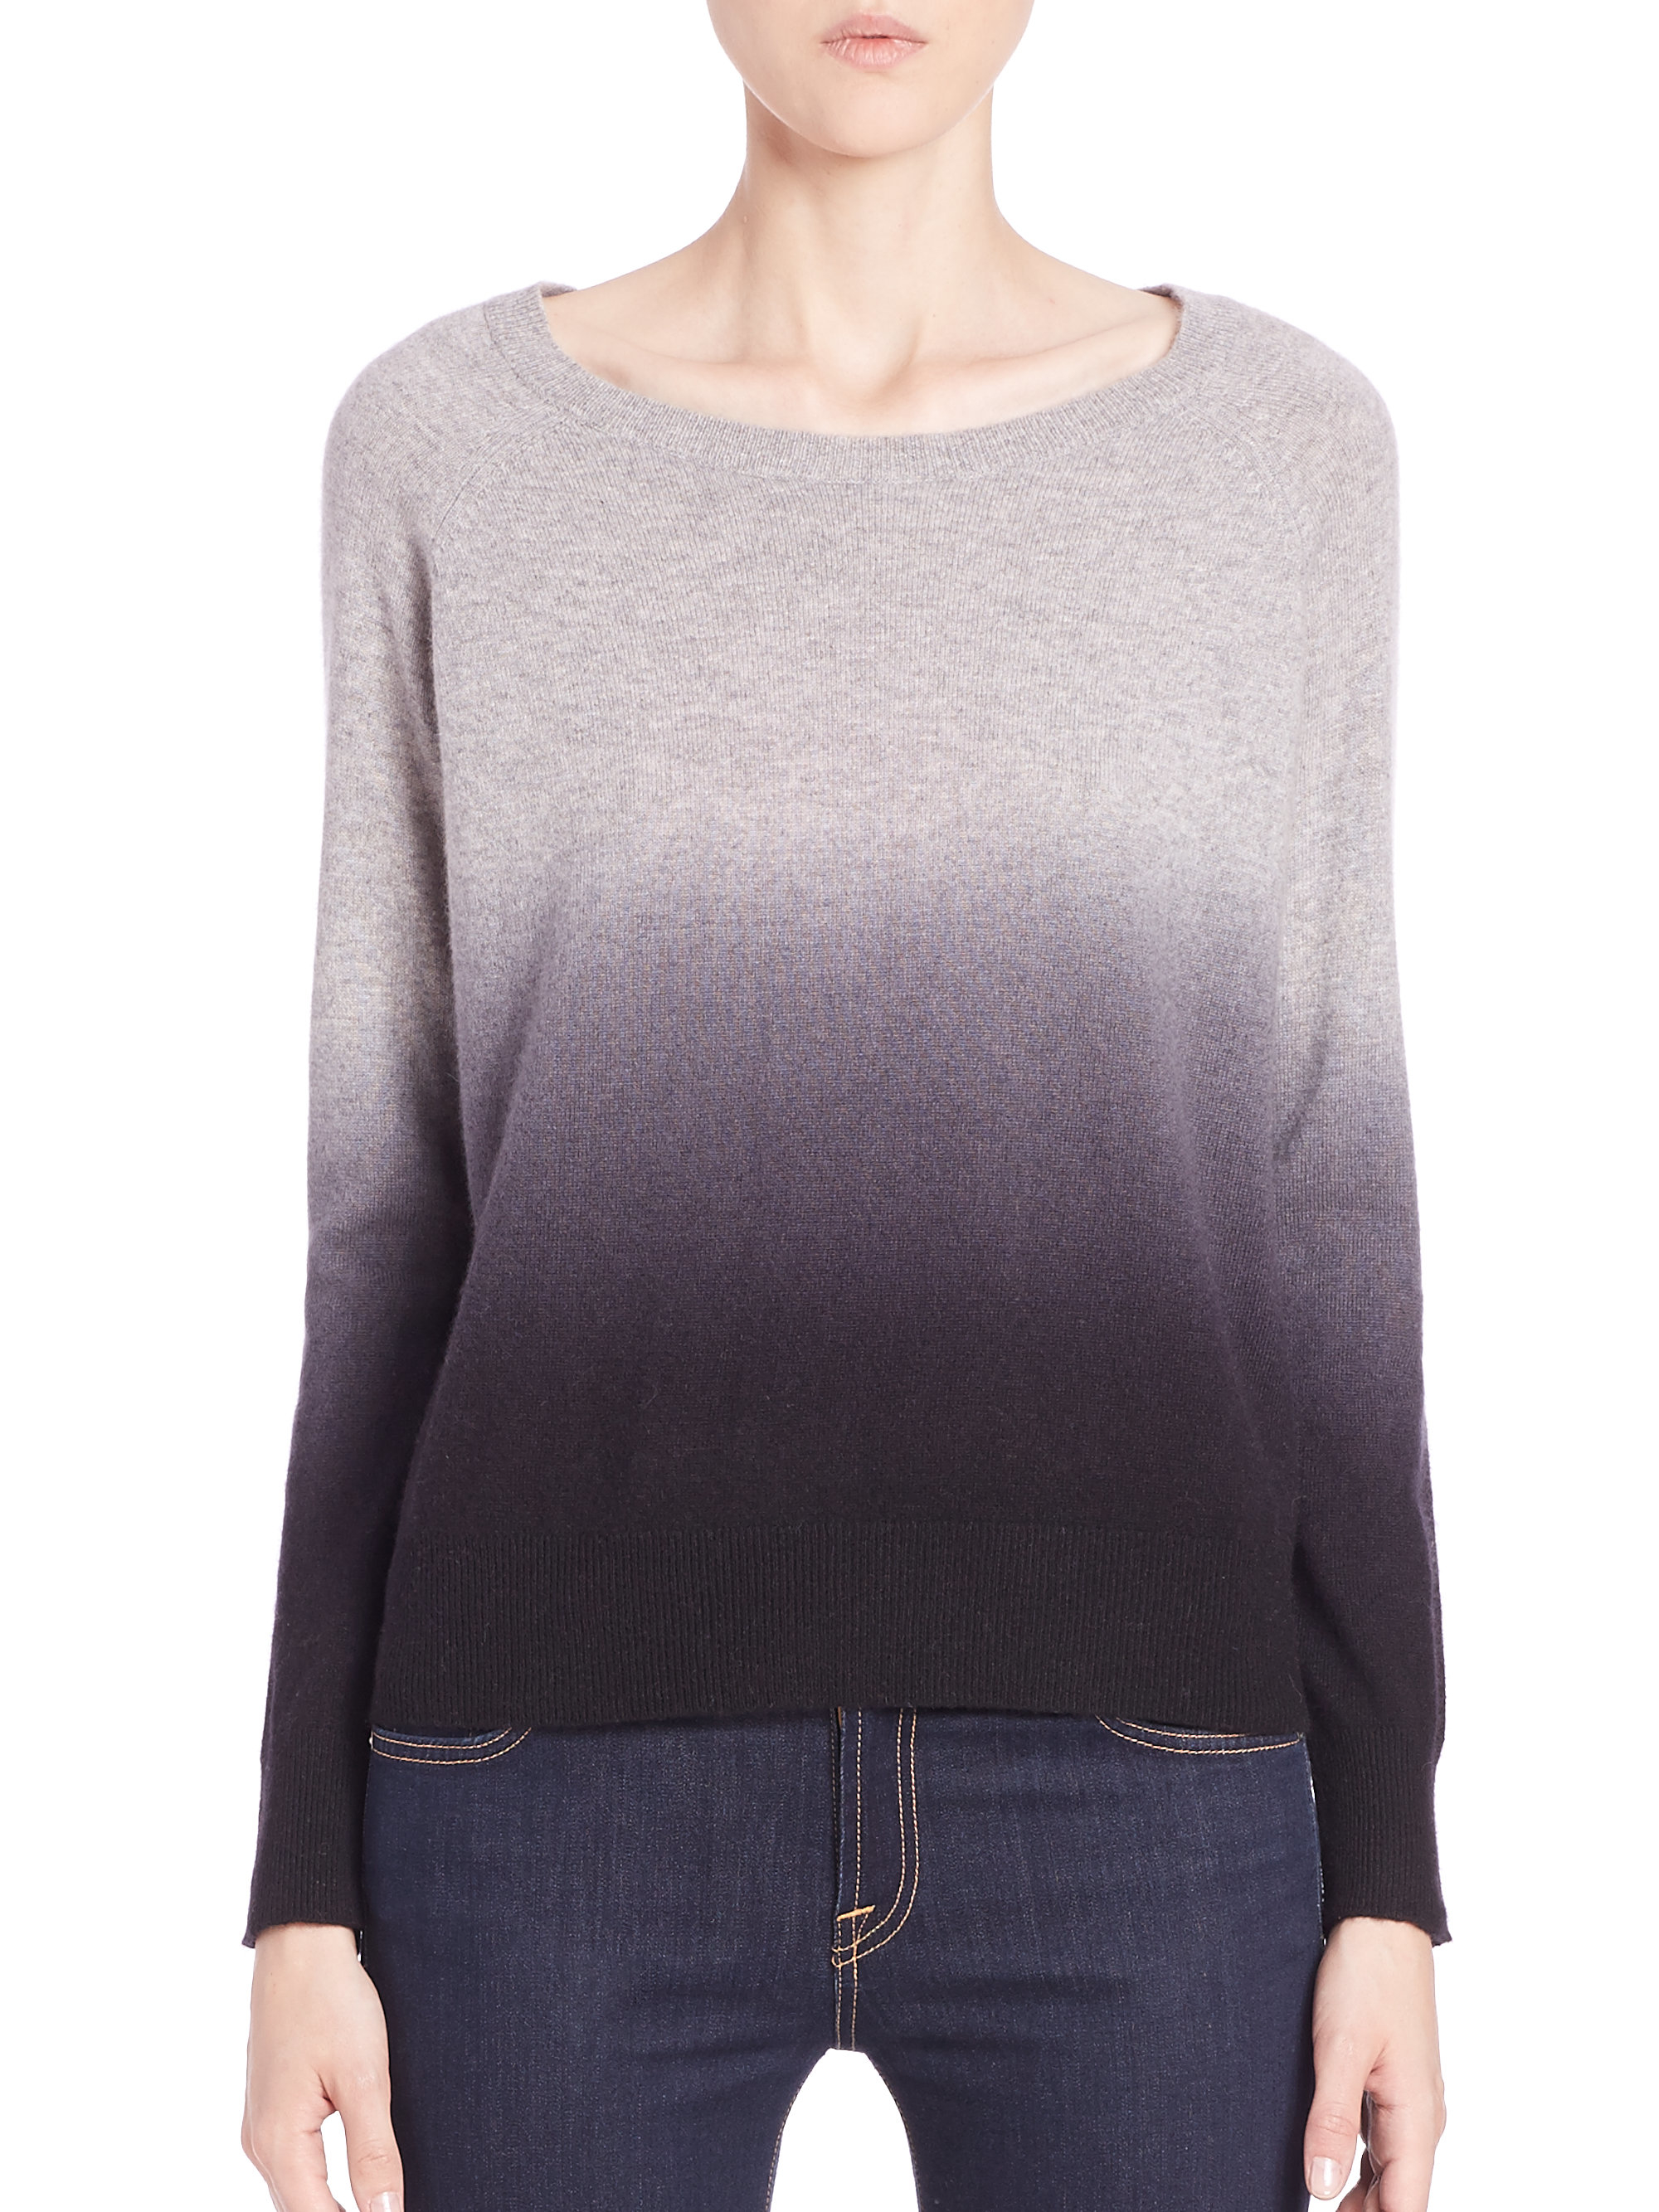 360cashmere Skull Cashmere Ombré Sweater in Gray | Lyst